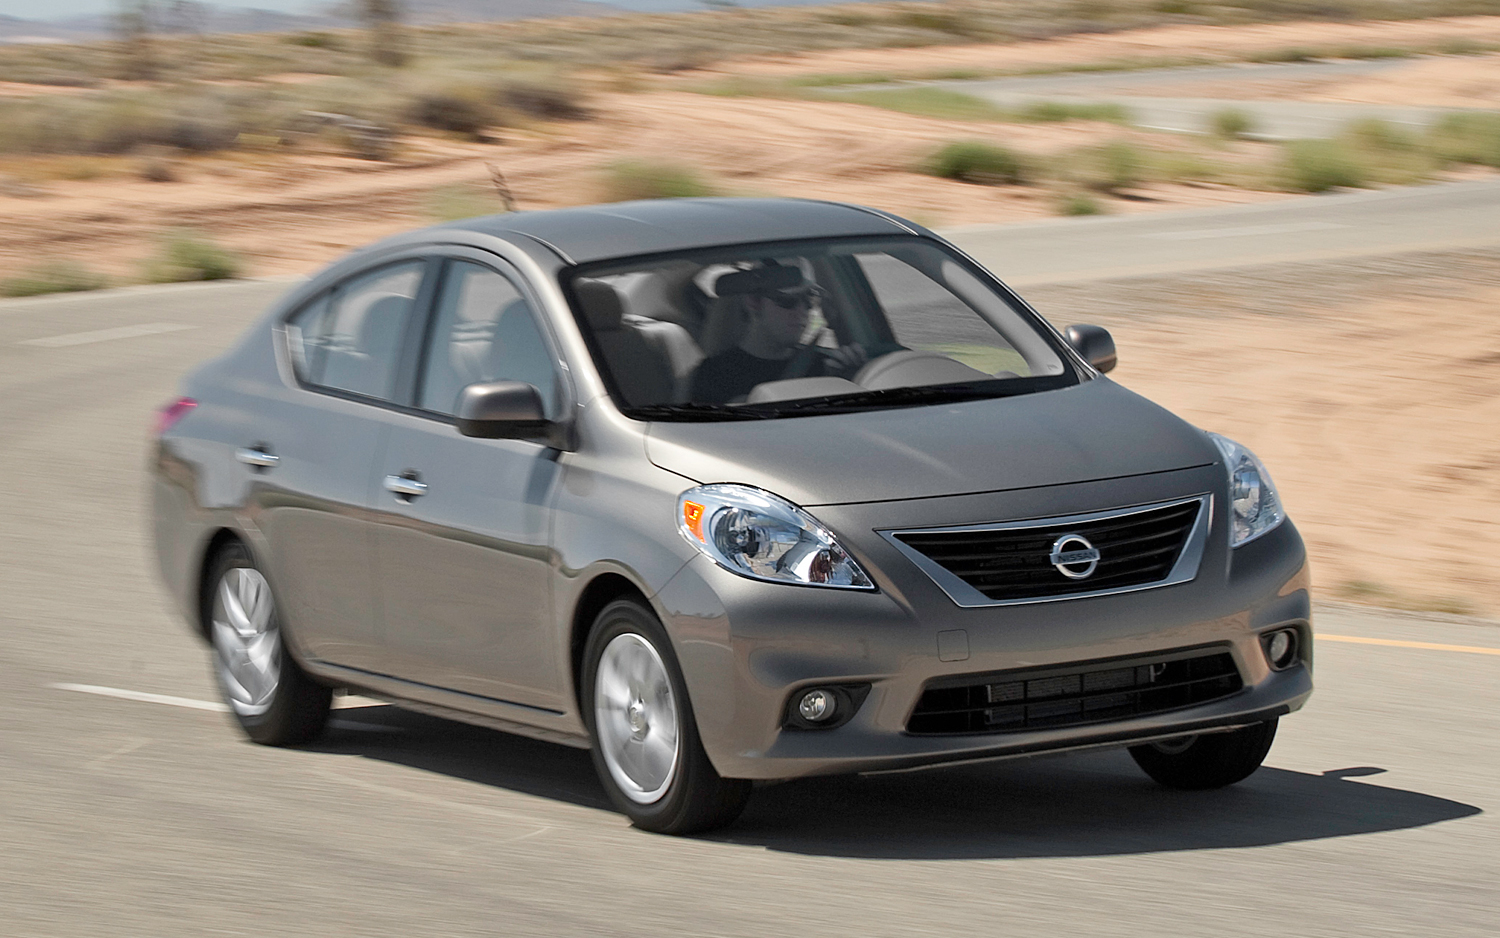 2012 motor trend car of the year contender: nissan versa - motortrend